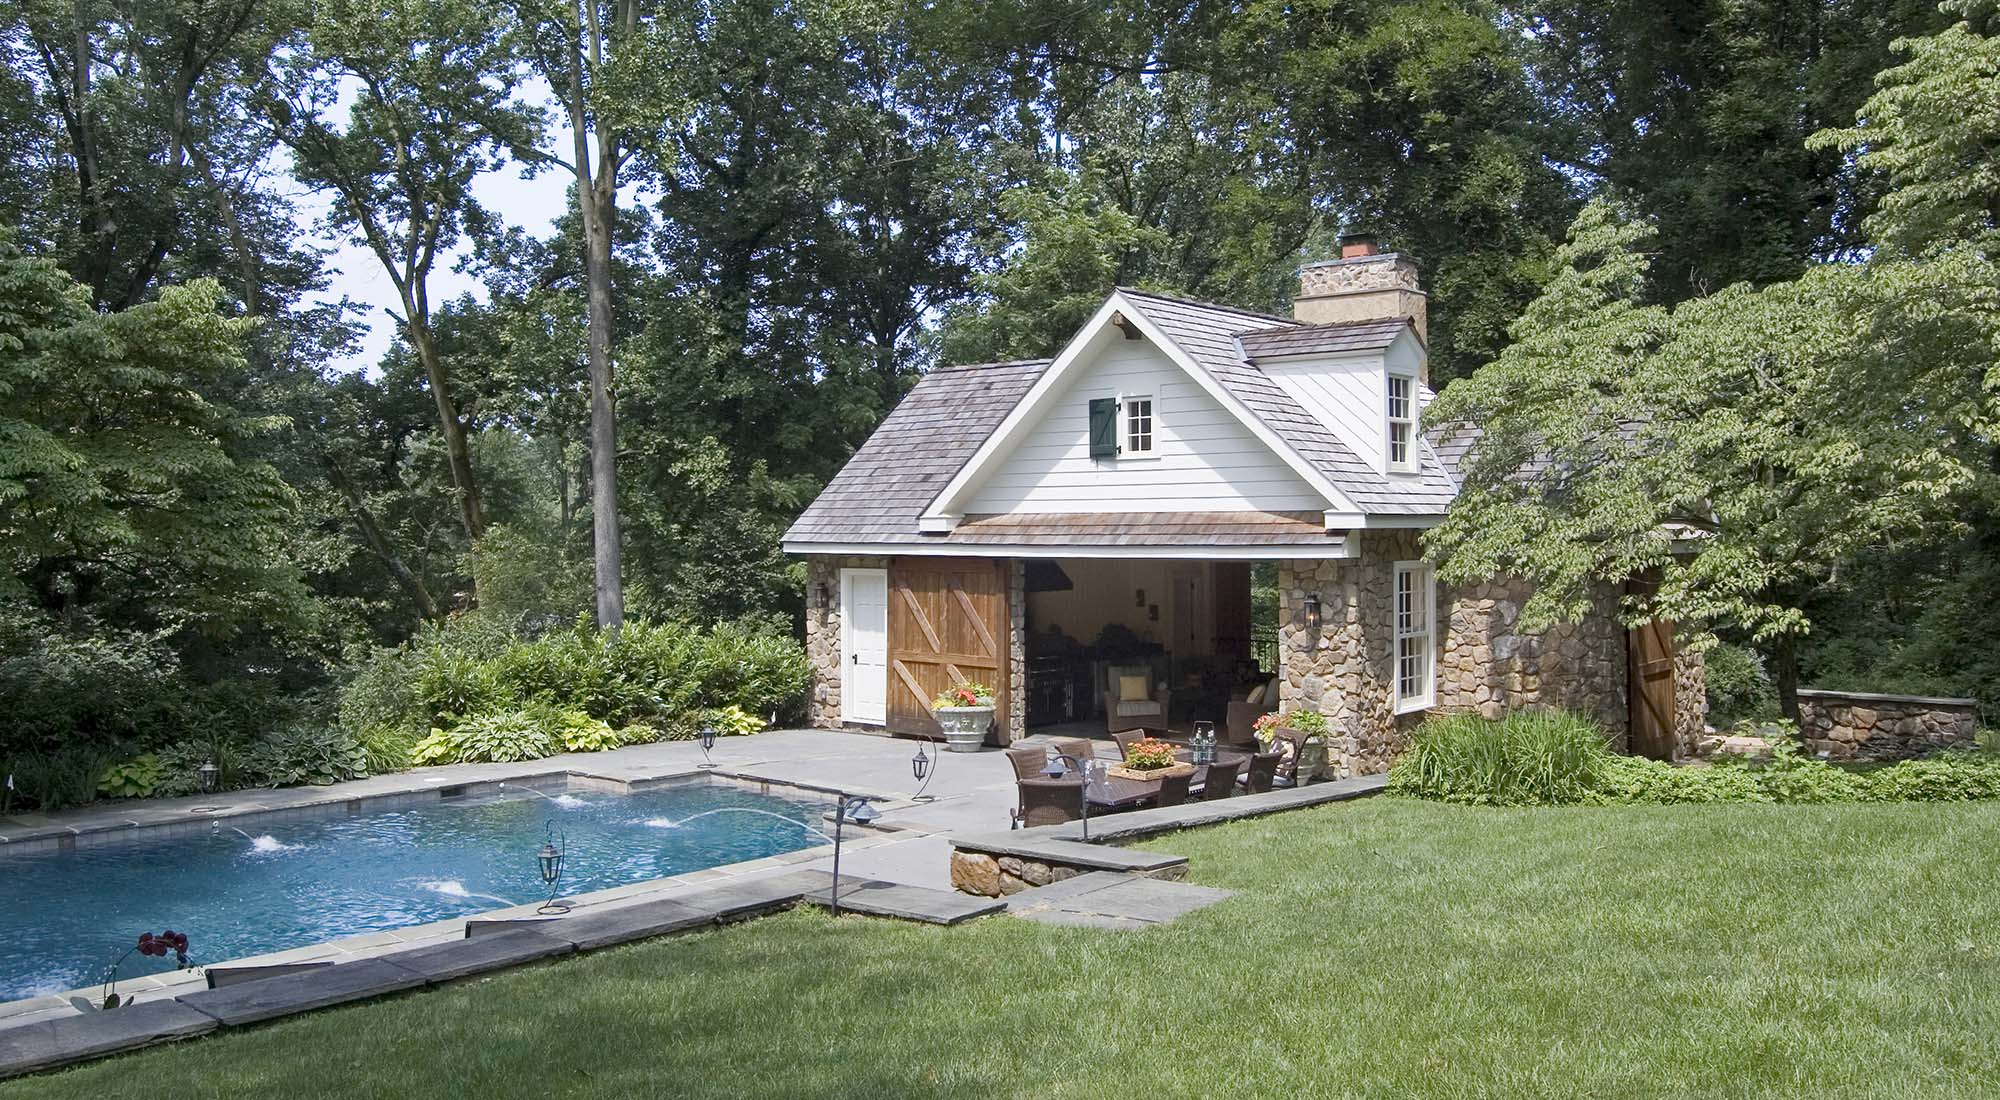 cute country pool house real stone with white siding real wood doors blue stone patio